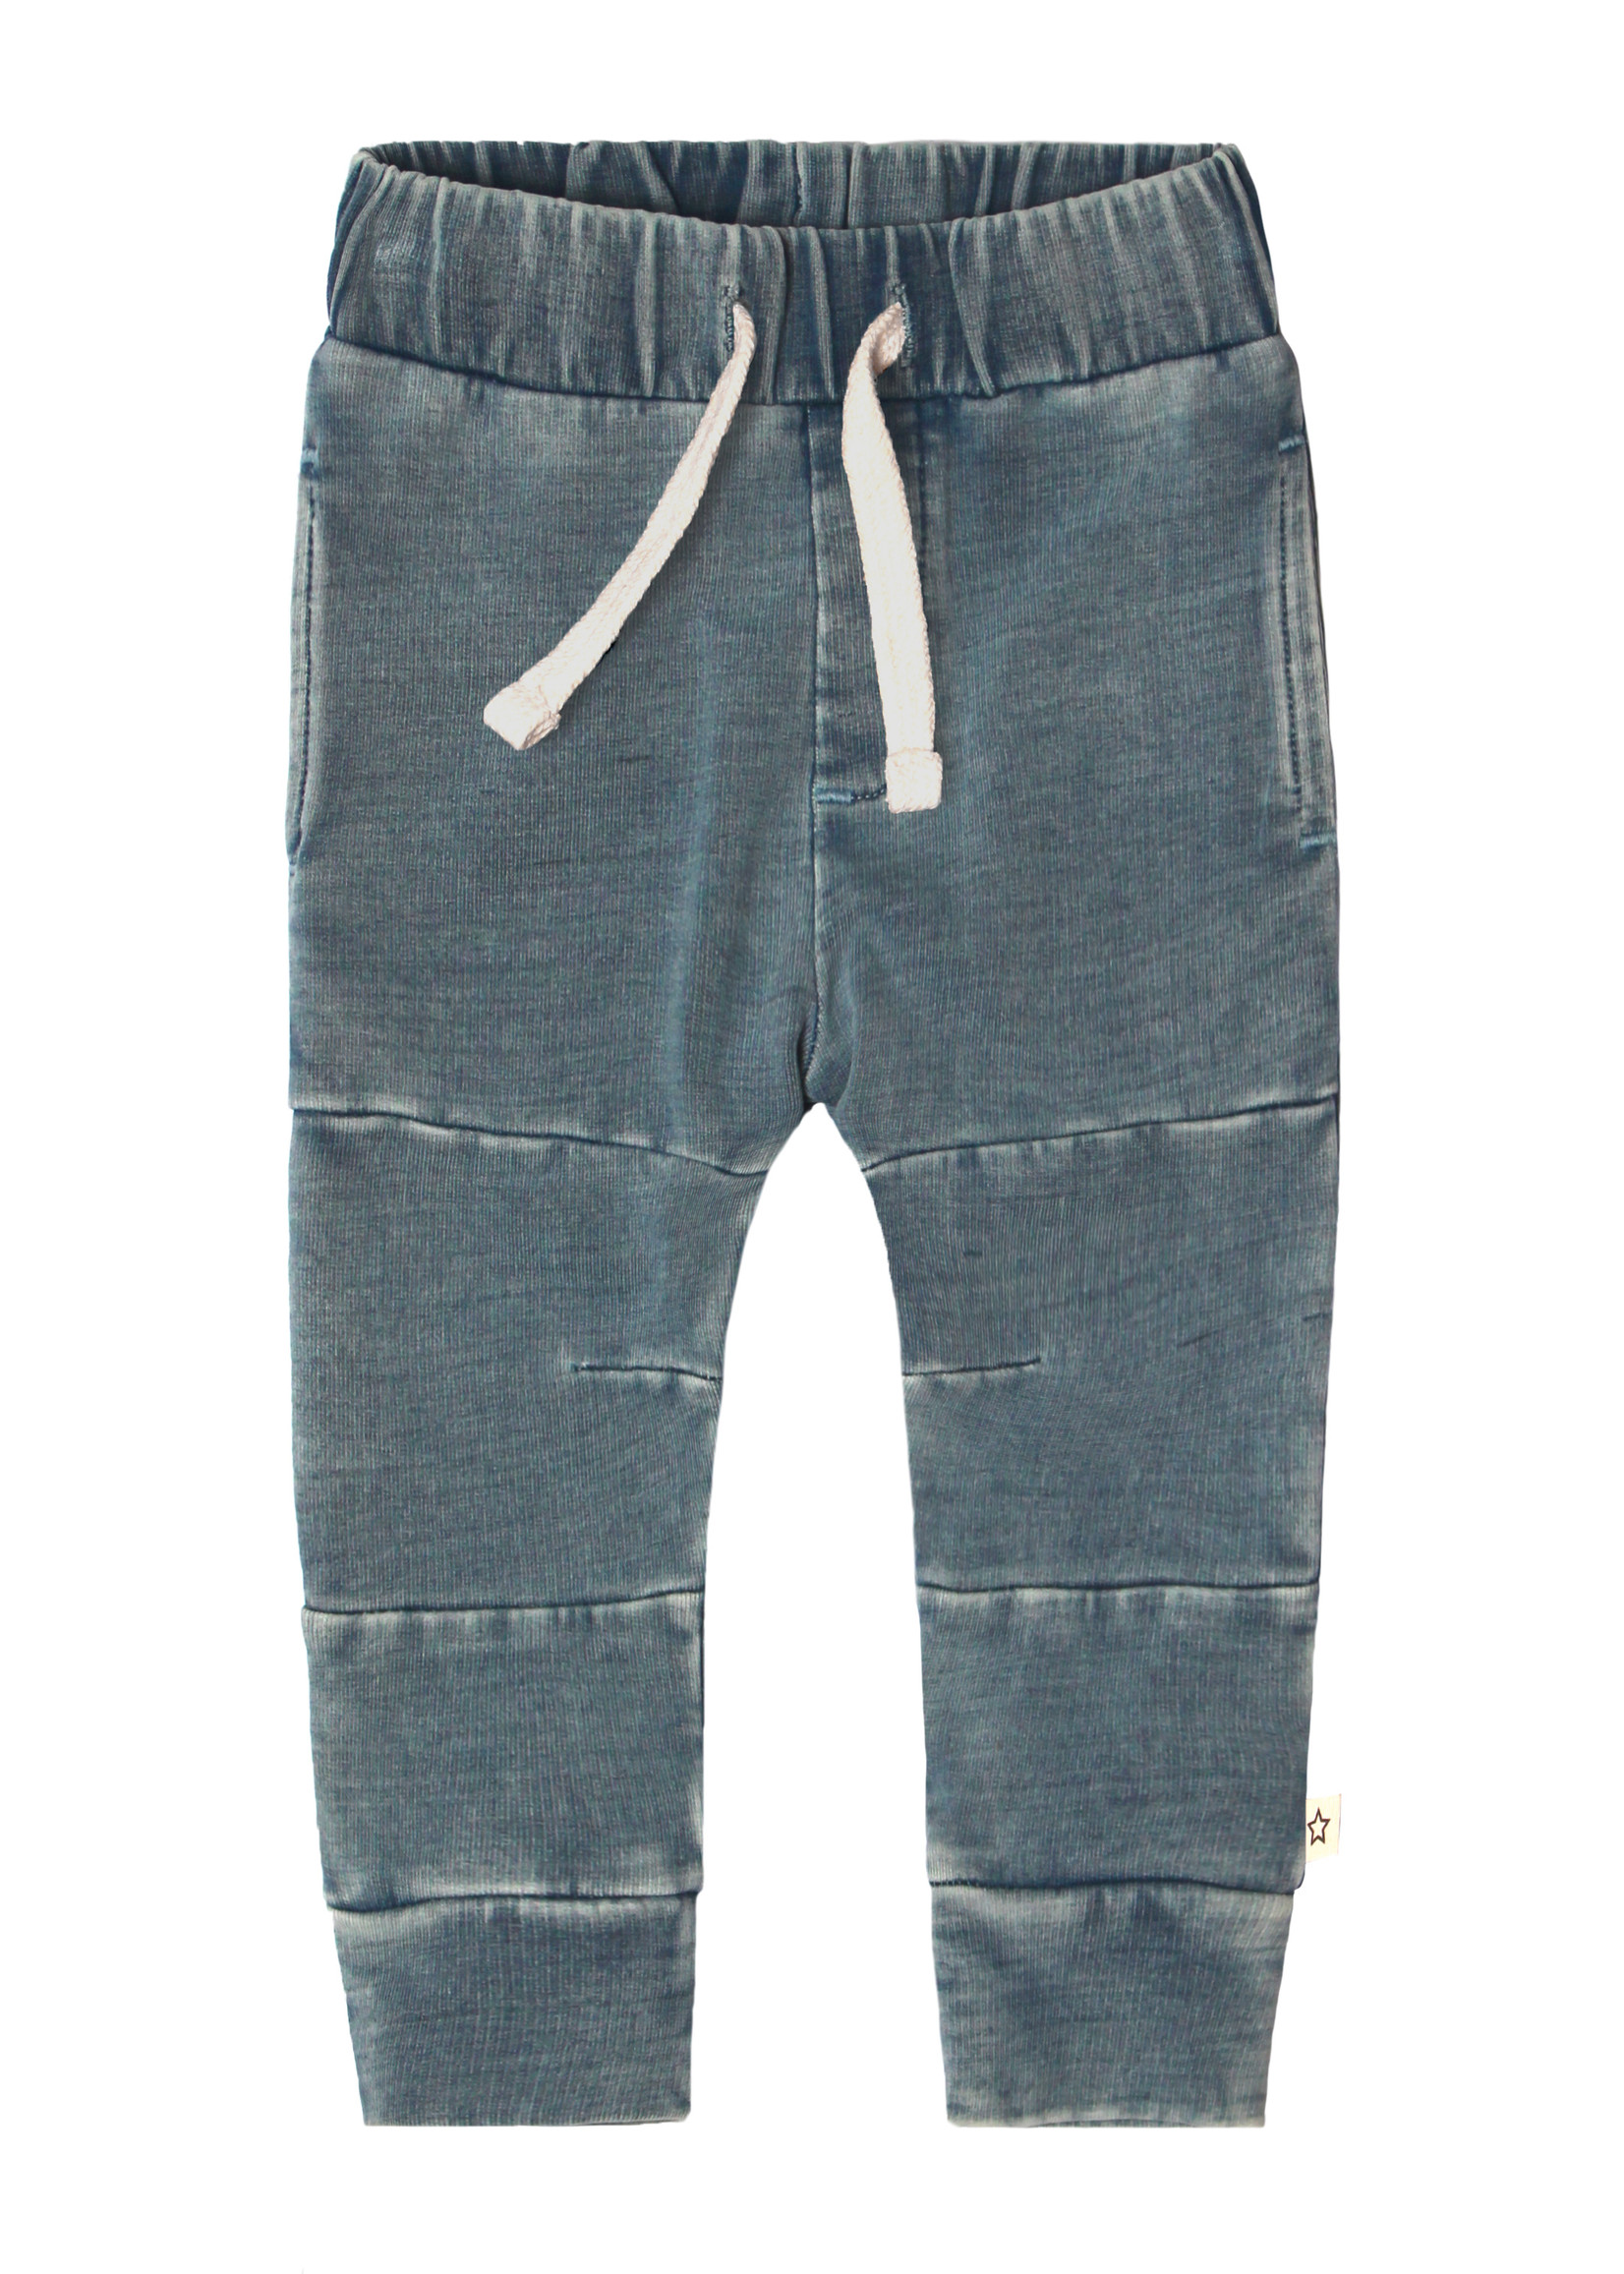 Your Wishes YW - Knitted Denim   Seam Jogging